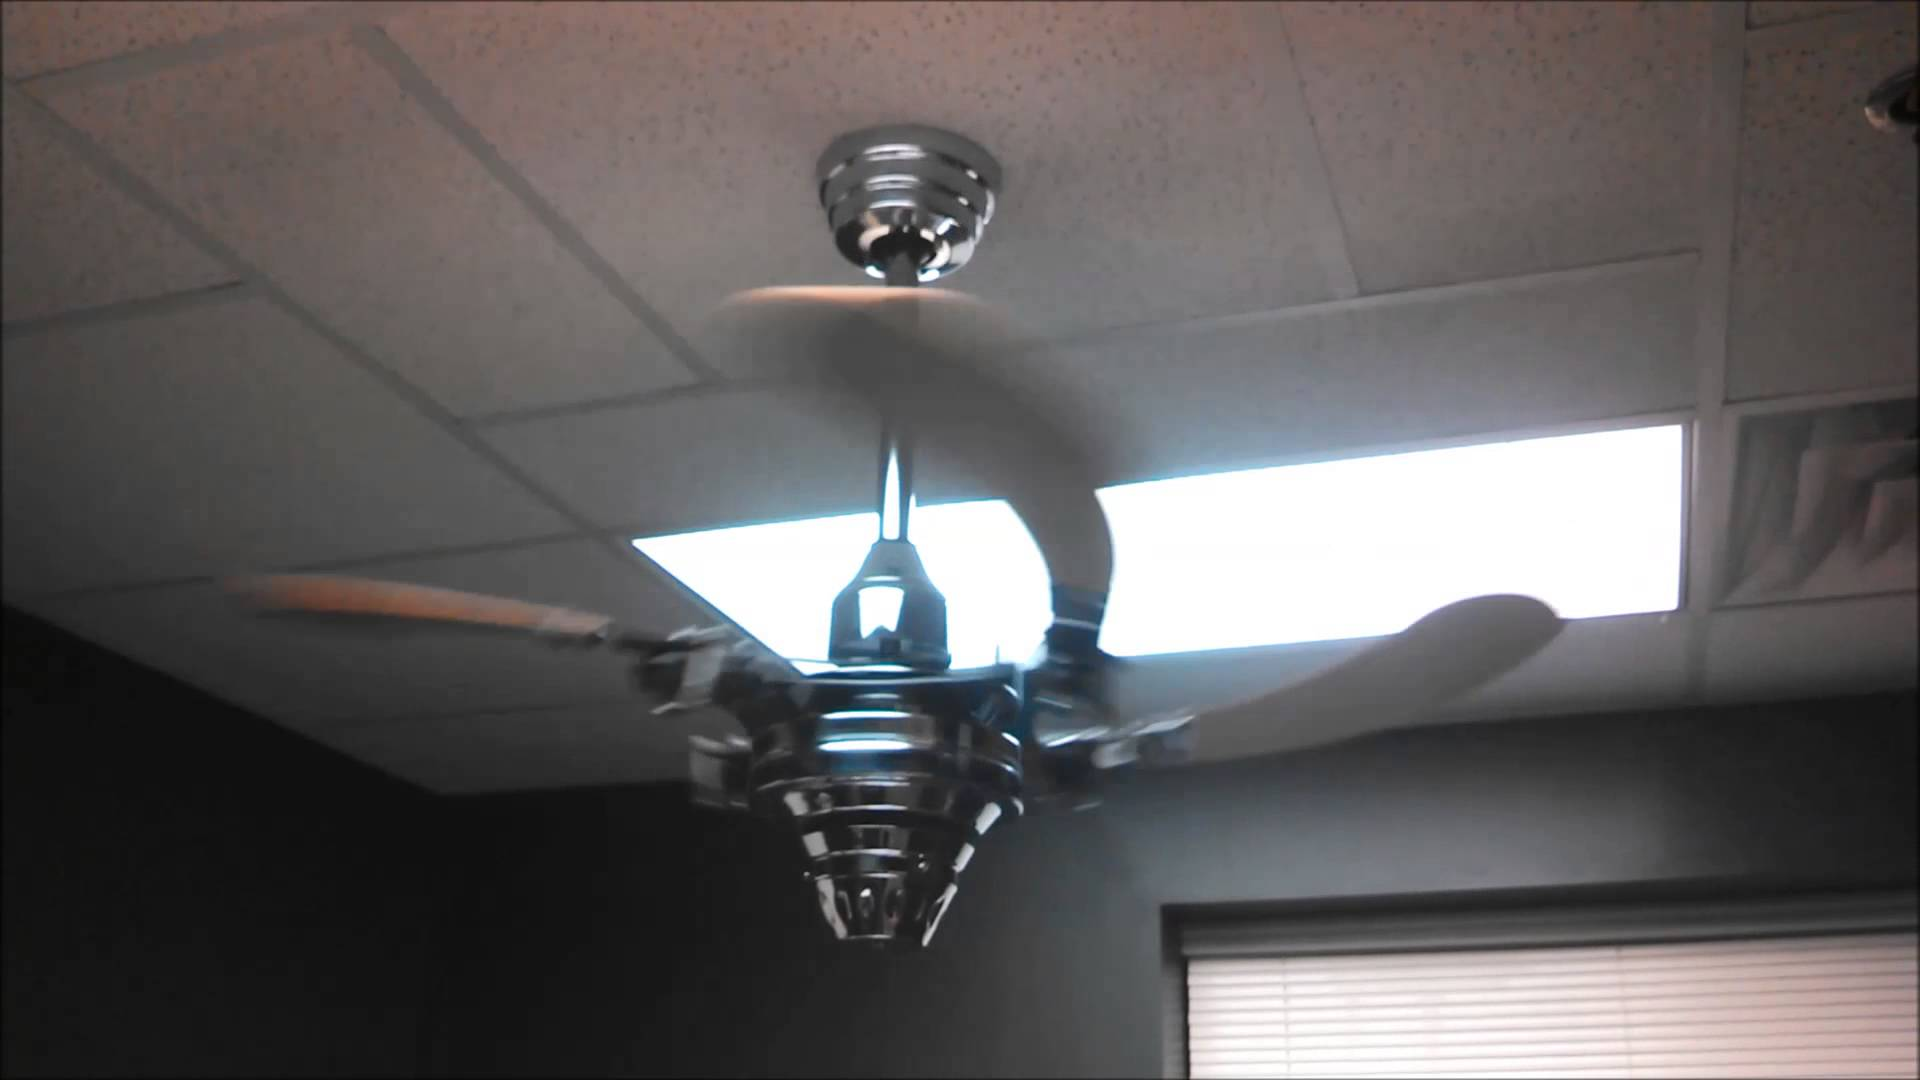 An Air Shadow Ceiling Fan Spins Its Unusual Retractable Blades at